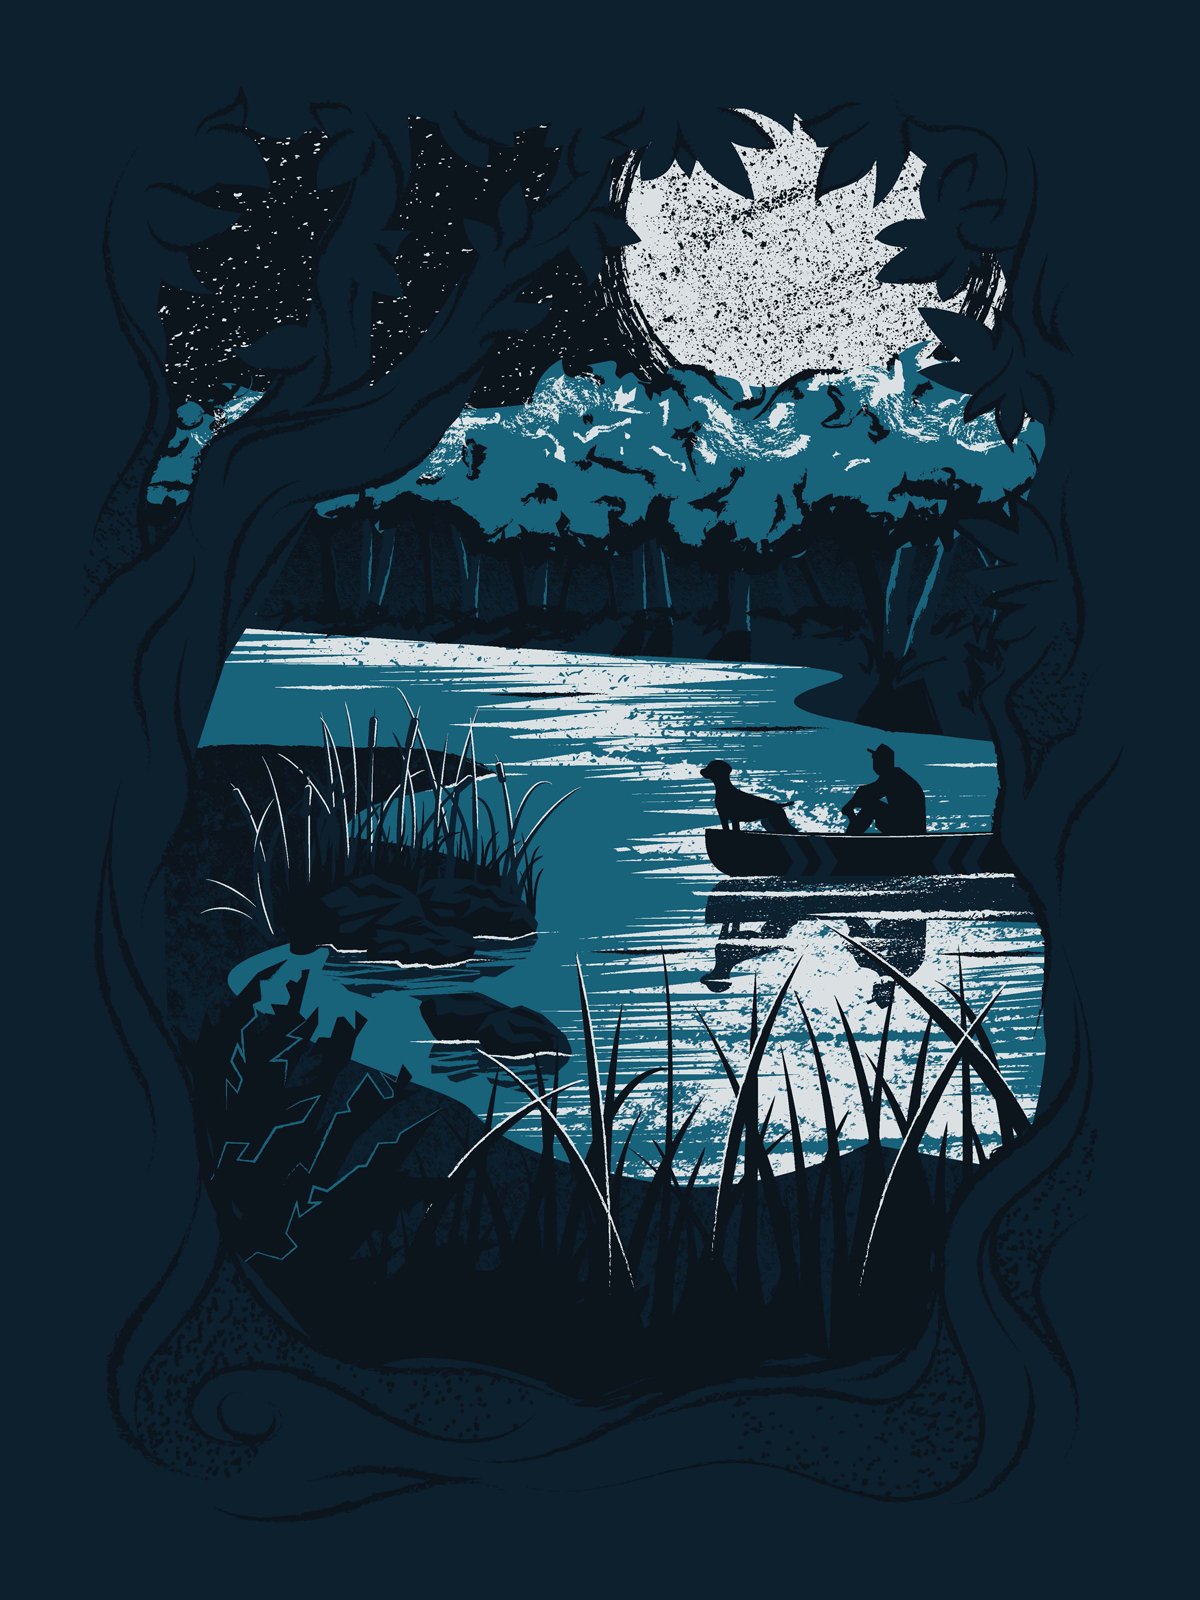 Full Moon Rendezvous poster by Sierra Fosness